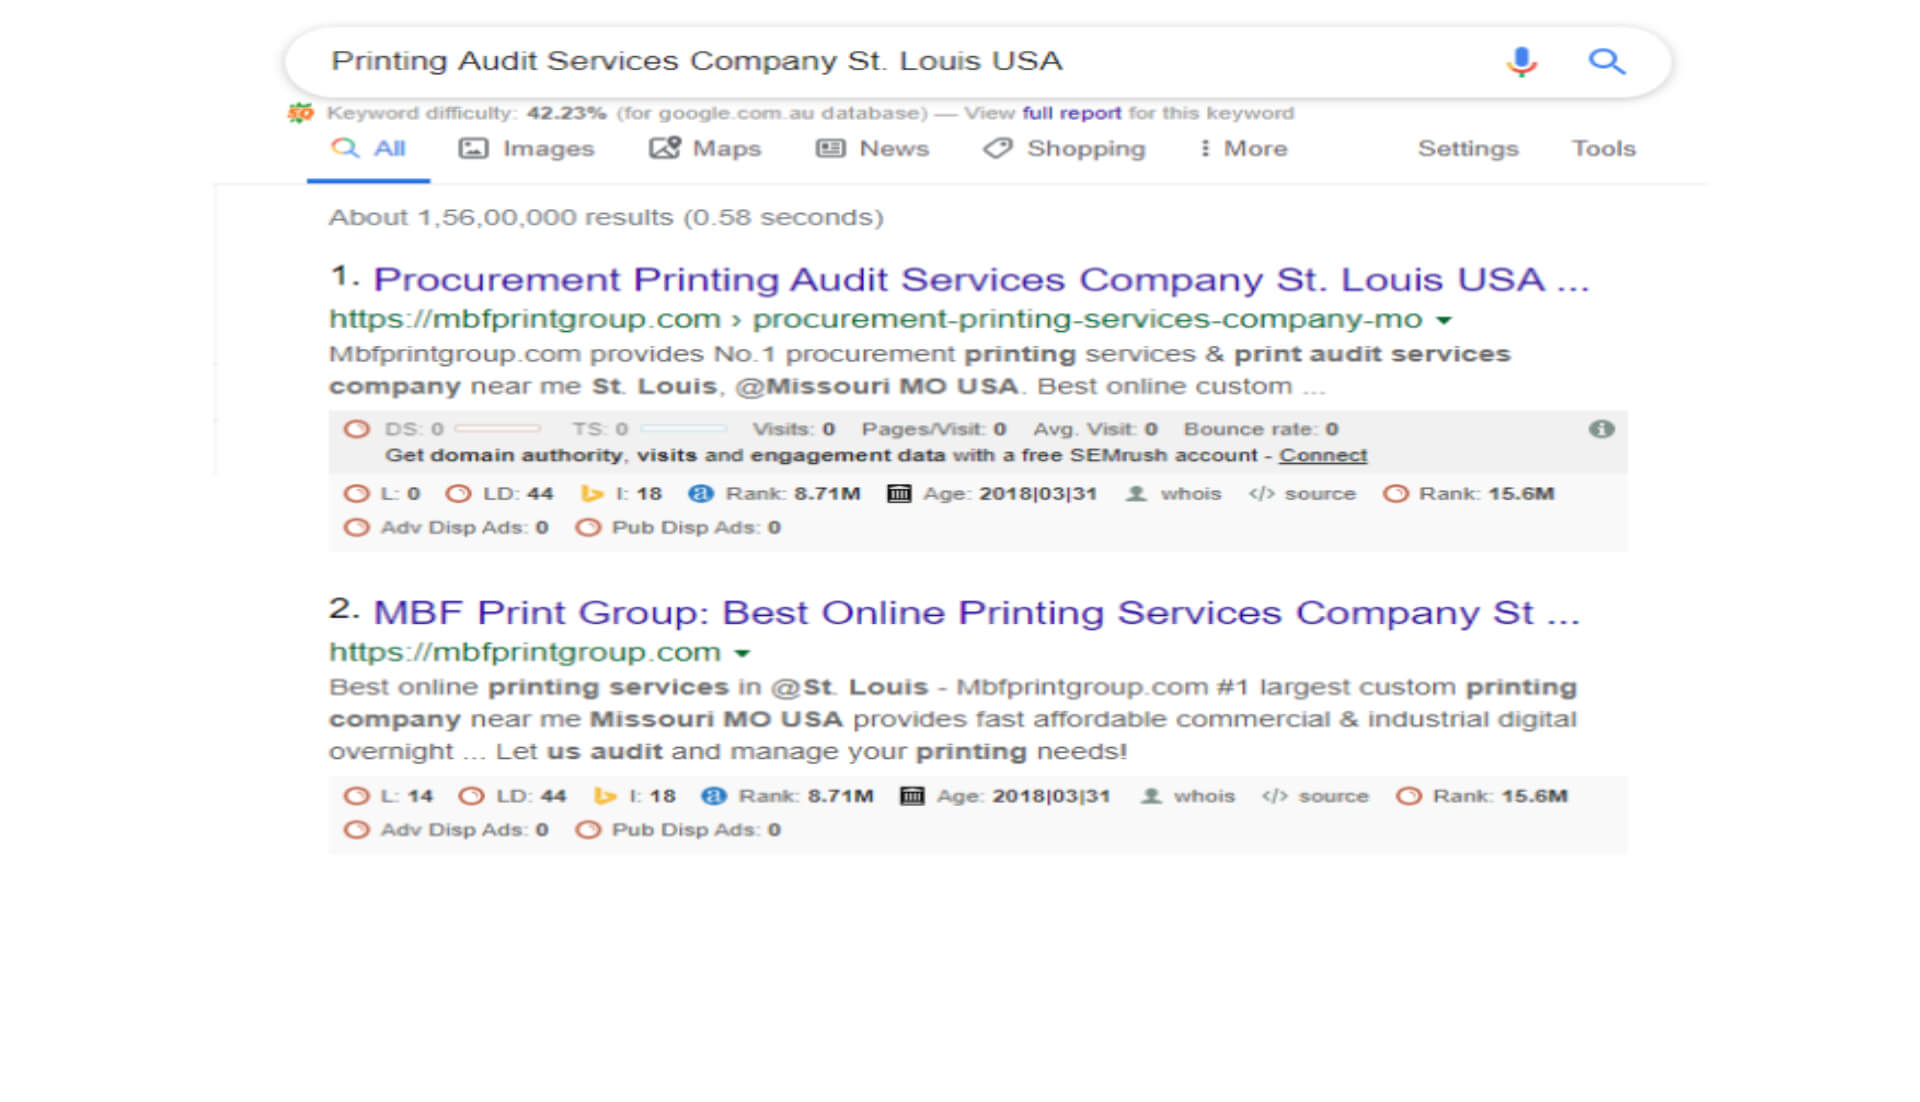 Printing Audit Services Company St.-Louis USA